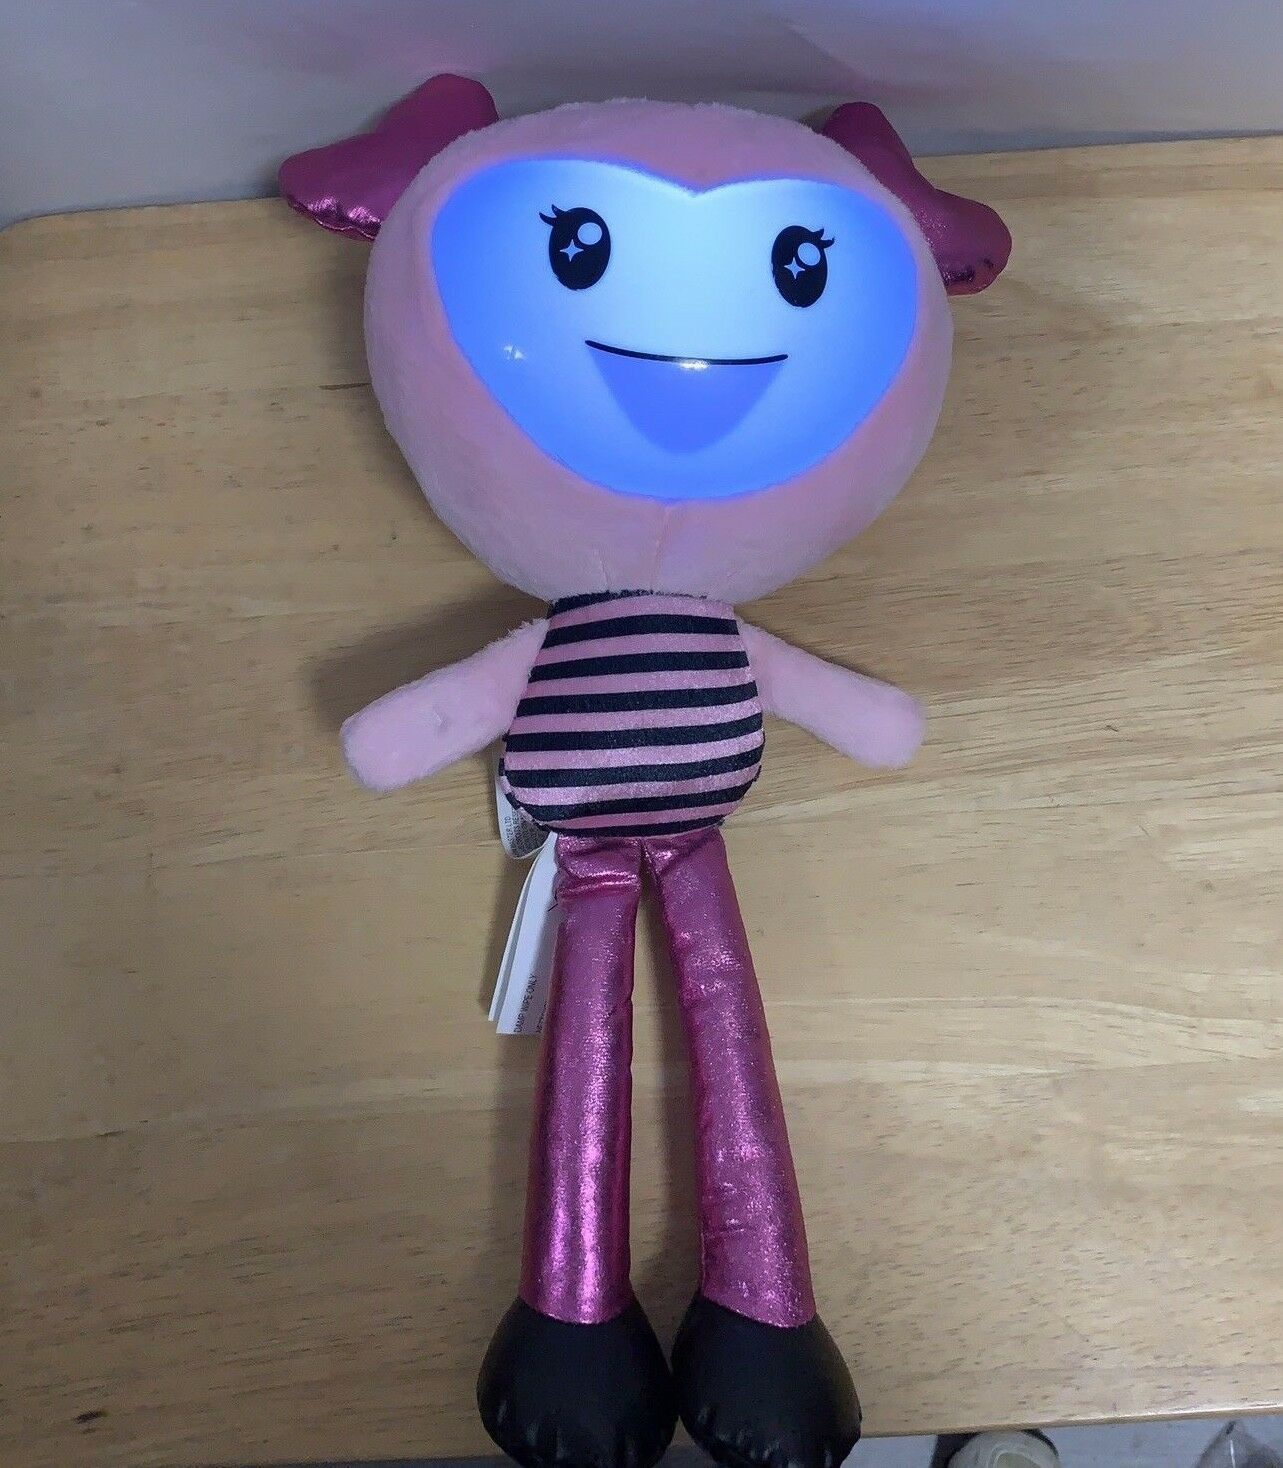 Primary image for Spin Master Brightlings Interactive Sing Talking Sounds Toy Light Up Doll 15""